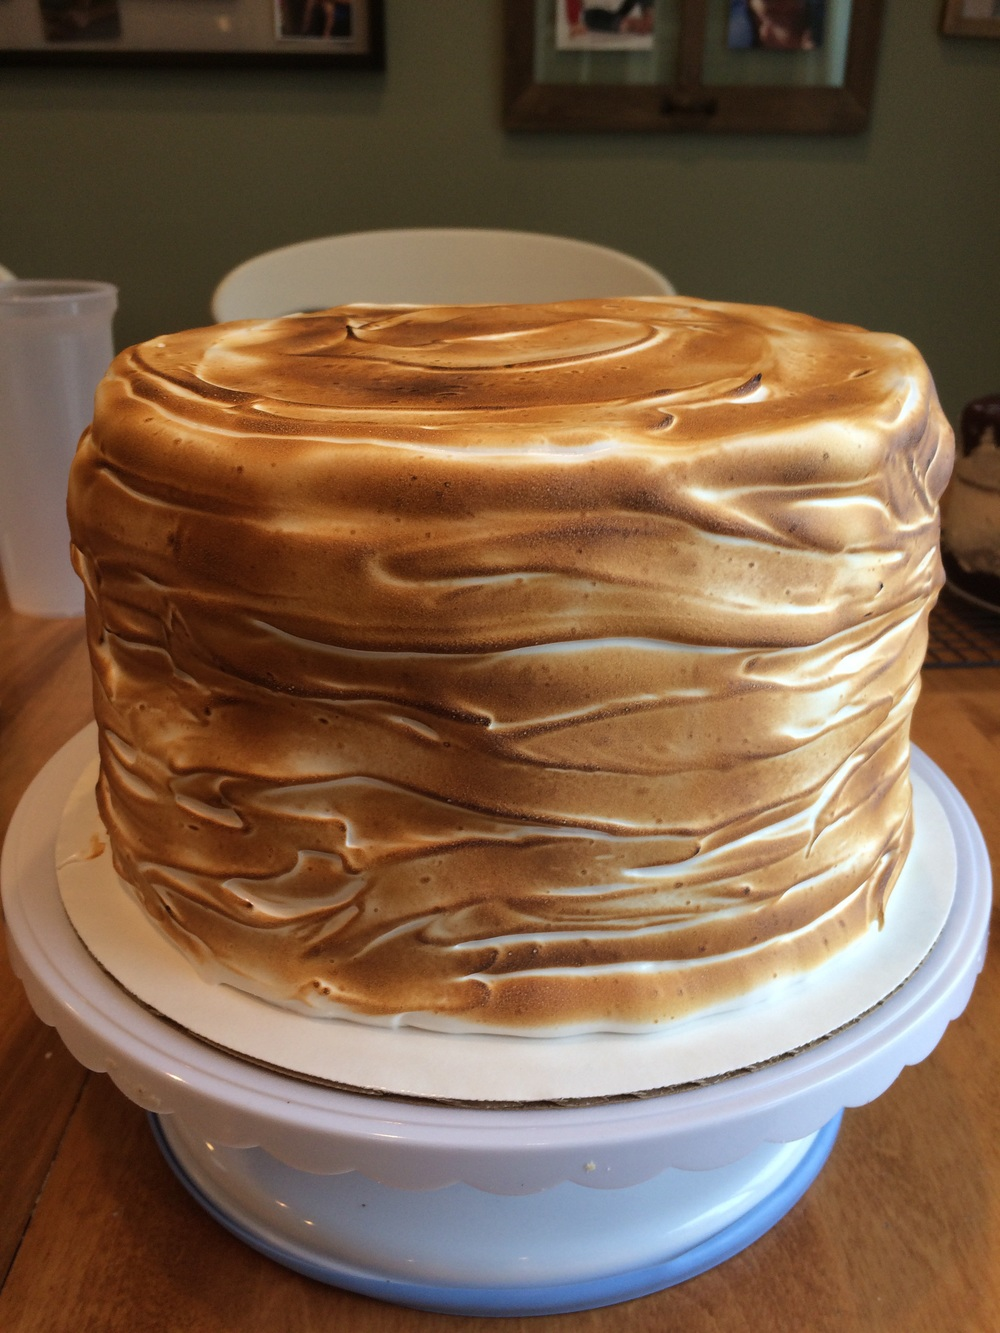 S'mores cake, chocolate cake filled with graham cracker buttercream and topped with toasts homemade marshmallow frosting